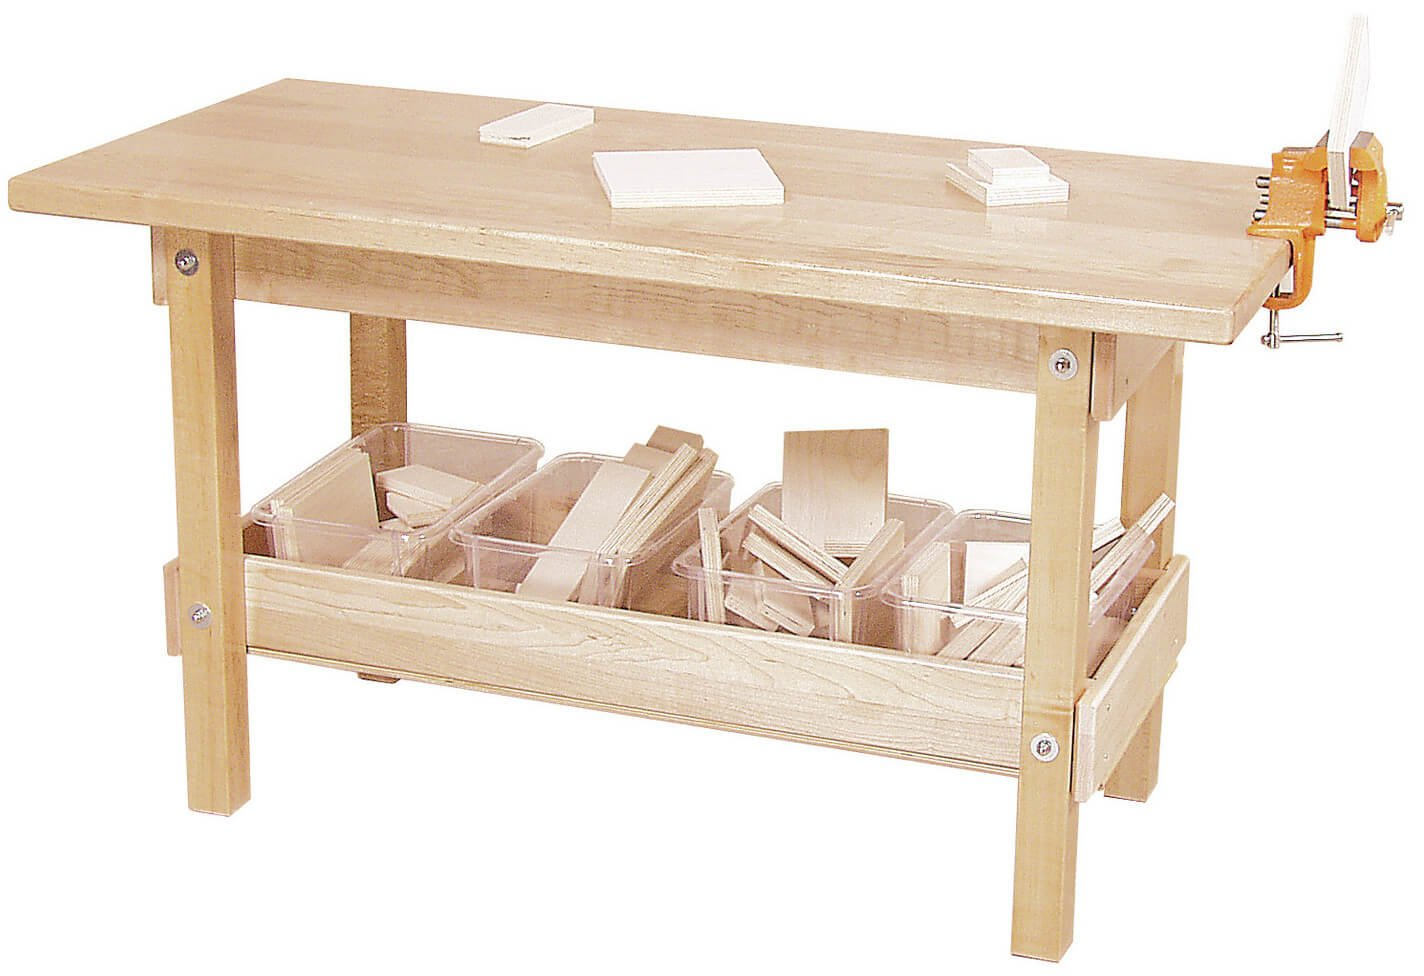 This stable wooden workbench has a large tray on the bottom to store your tools or materials for easy reach.